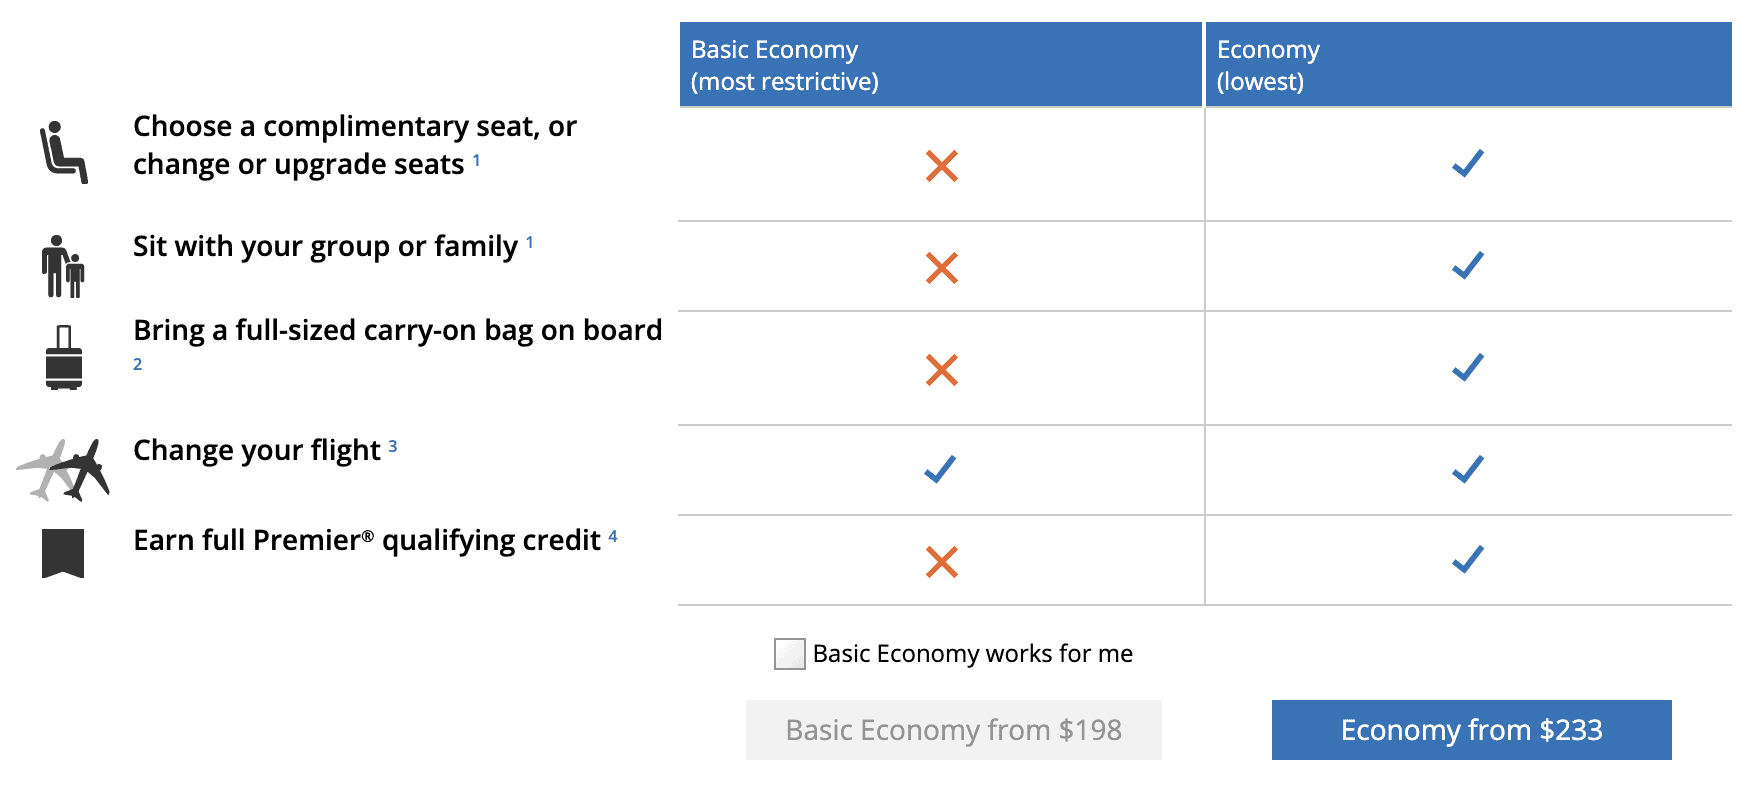 Basic Economy On United